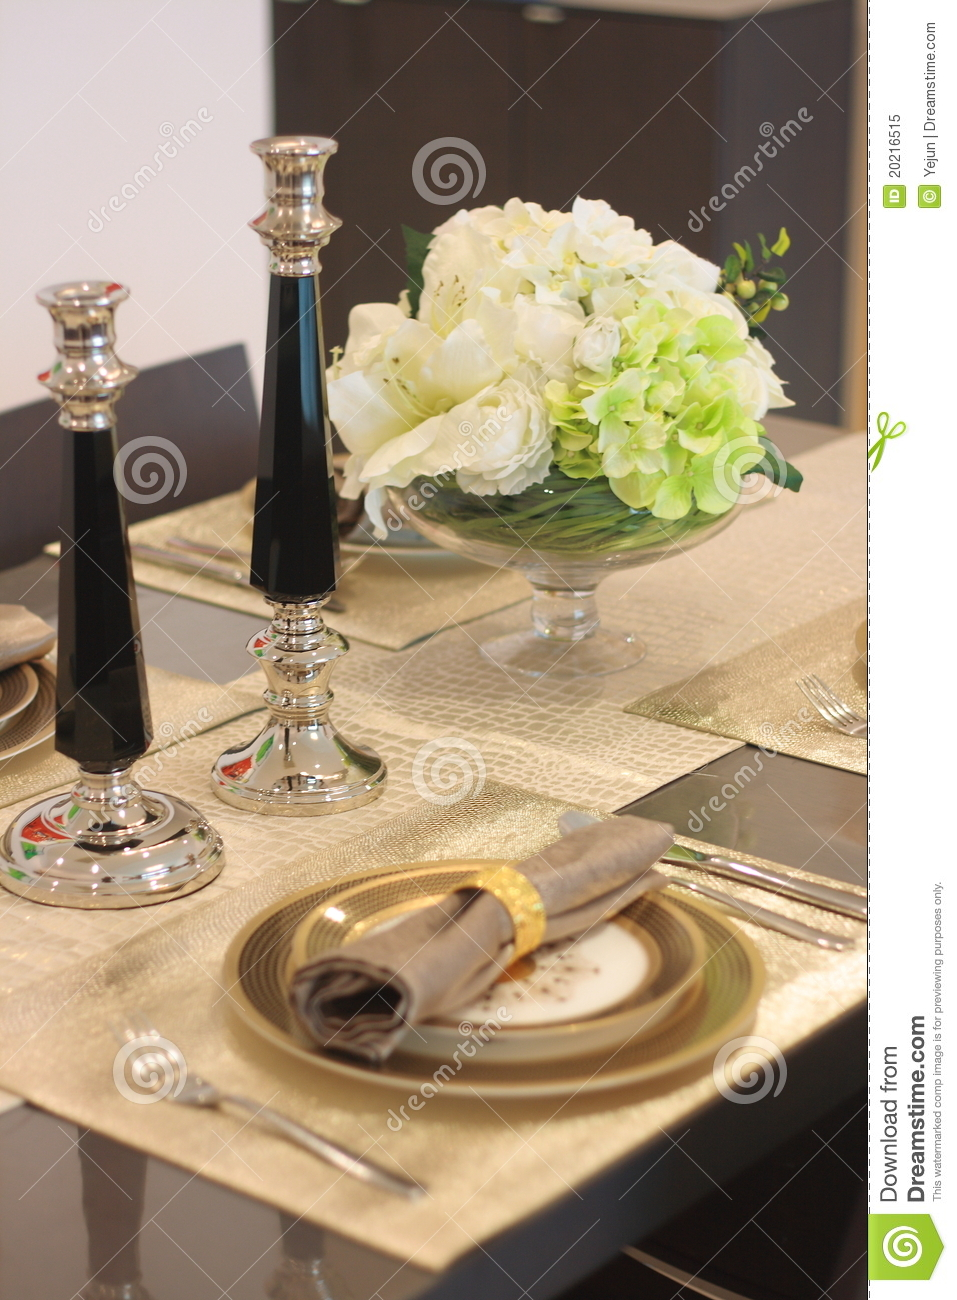 dining table 20216515